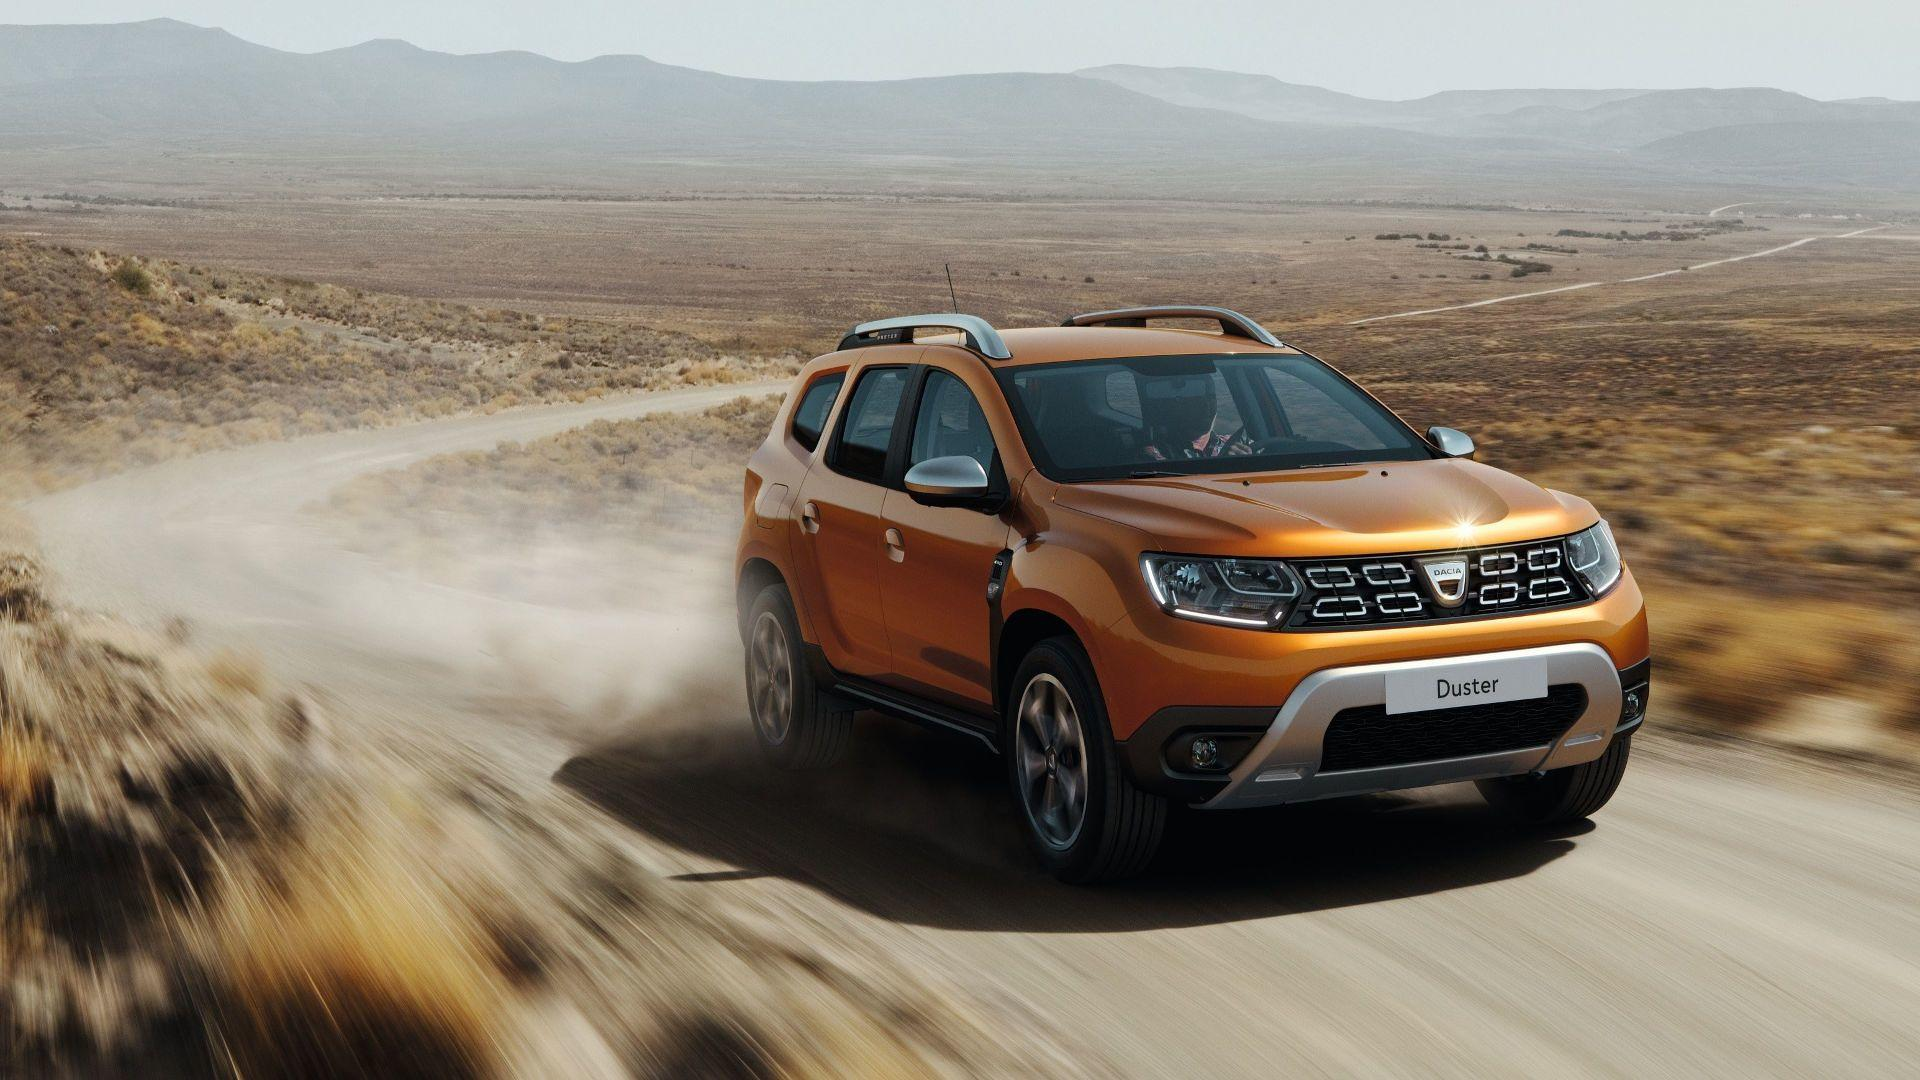 2017 dacia duster next generation review future auto review - 2018 Dacia Duster Goes Official With Evolutionary Design Product 2017 08 30 07 27 18